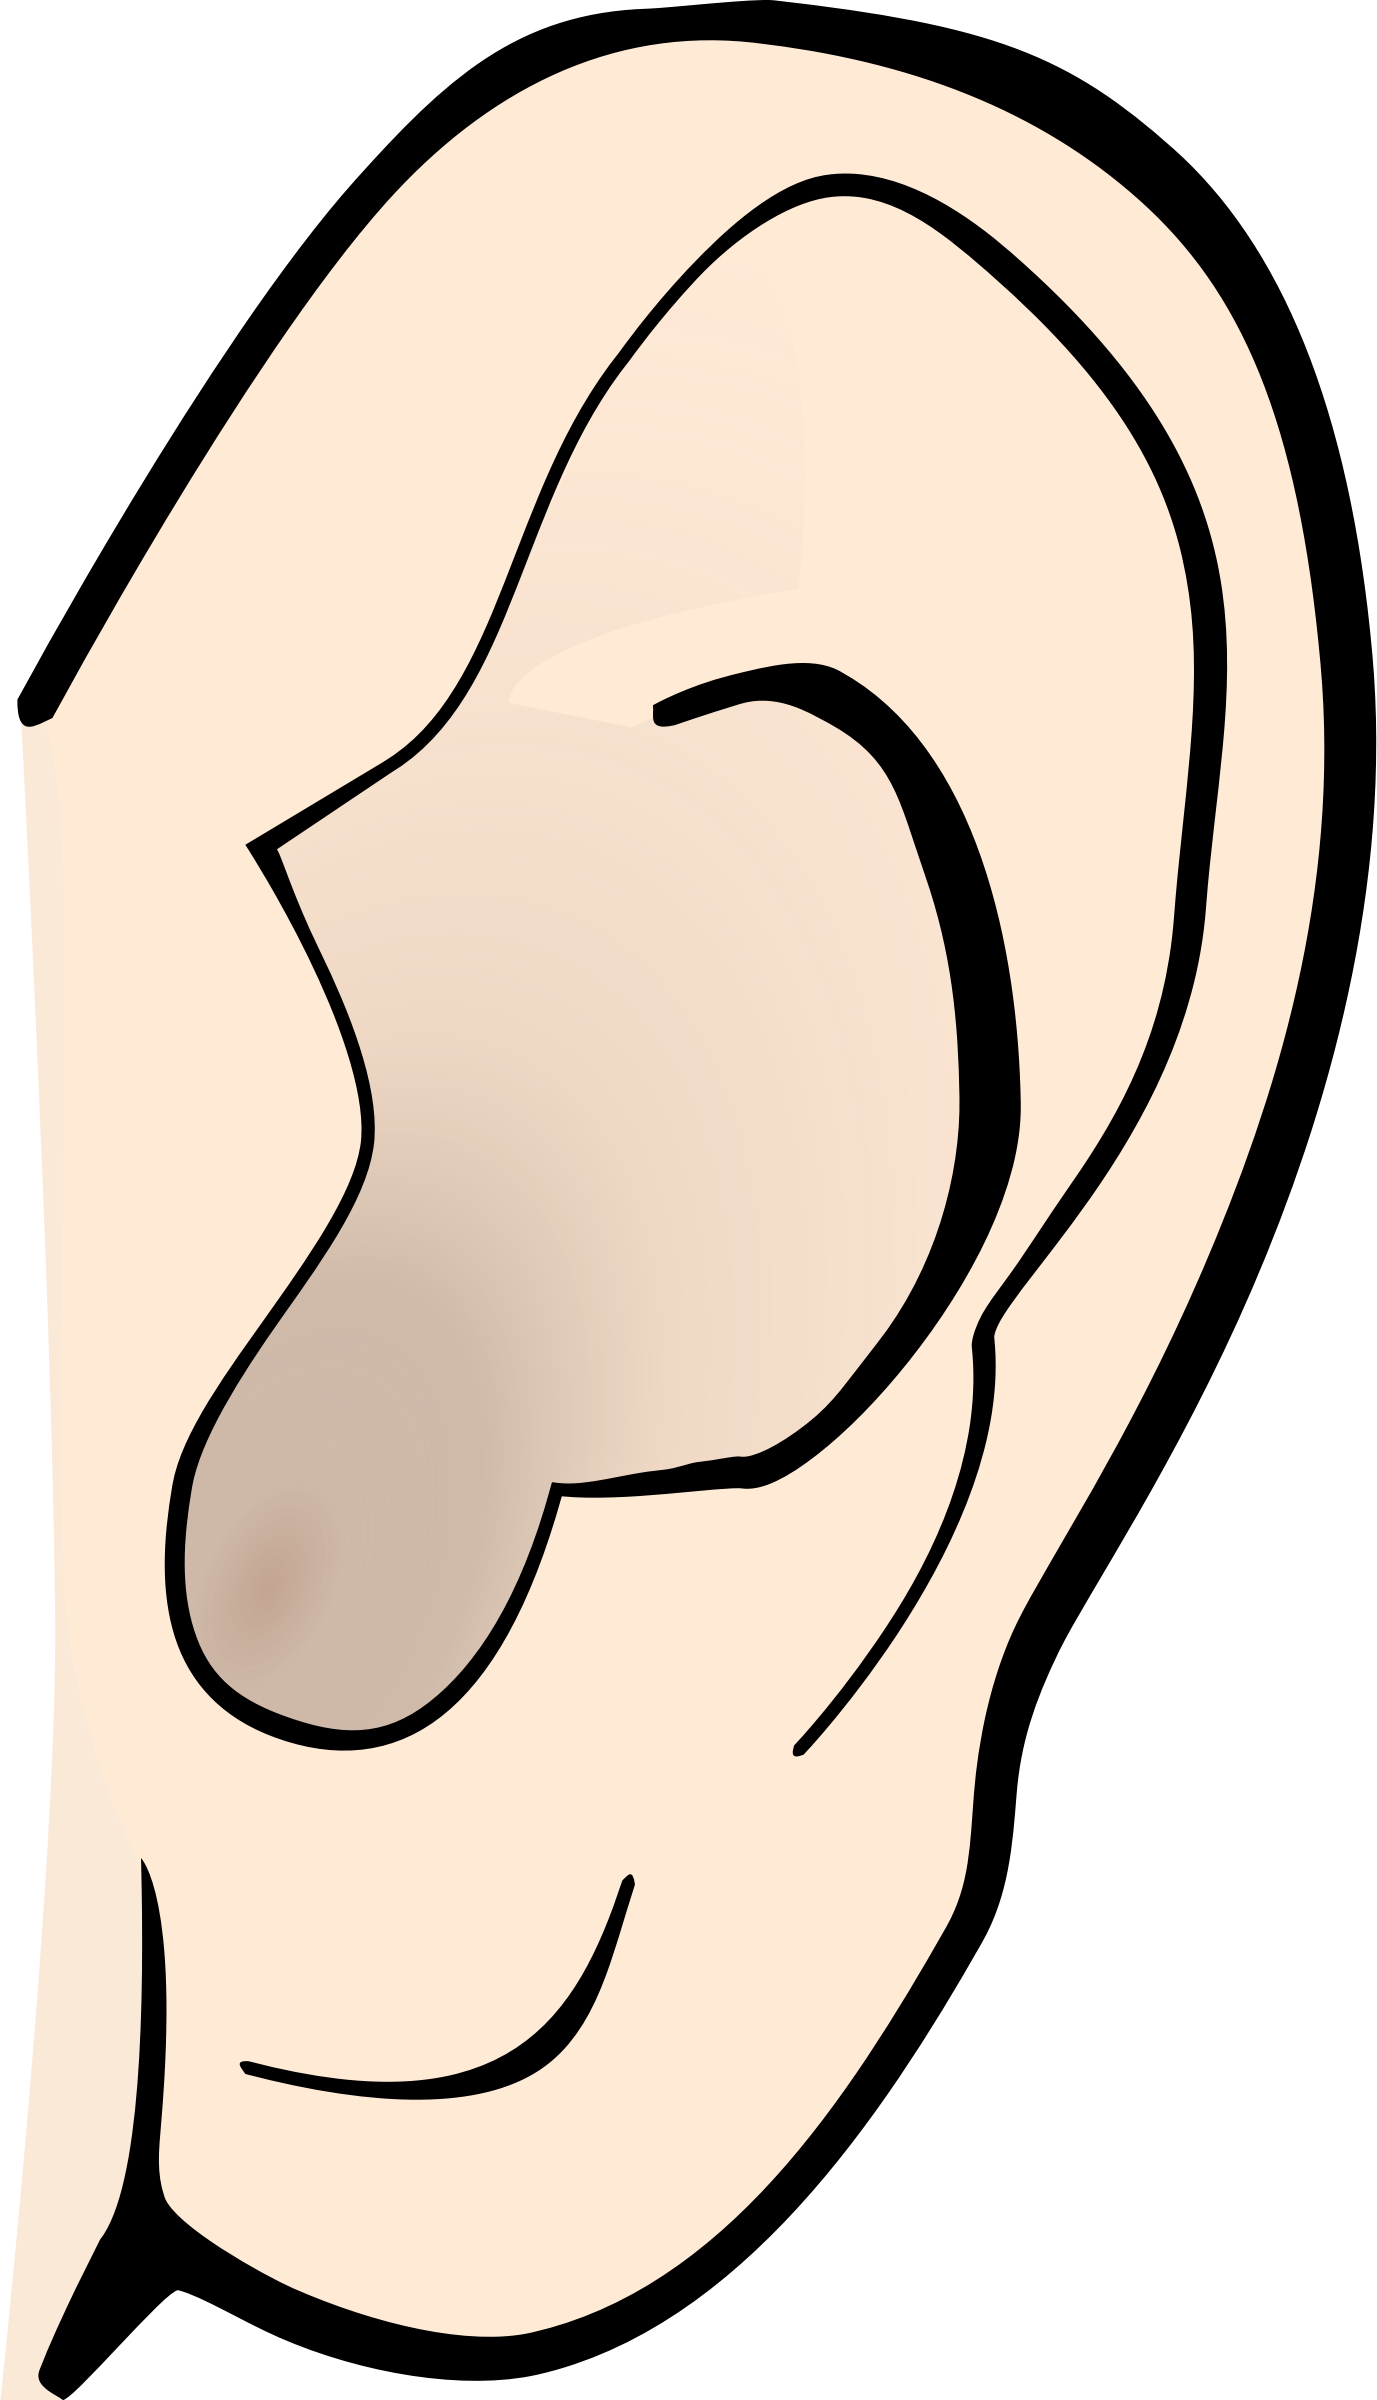 Png ear clipart - PNG Ears Listening